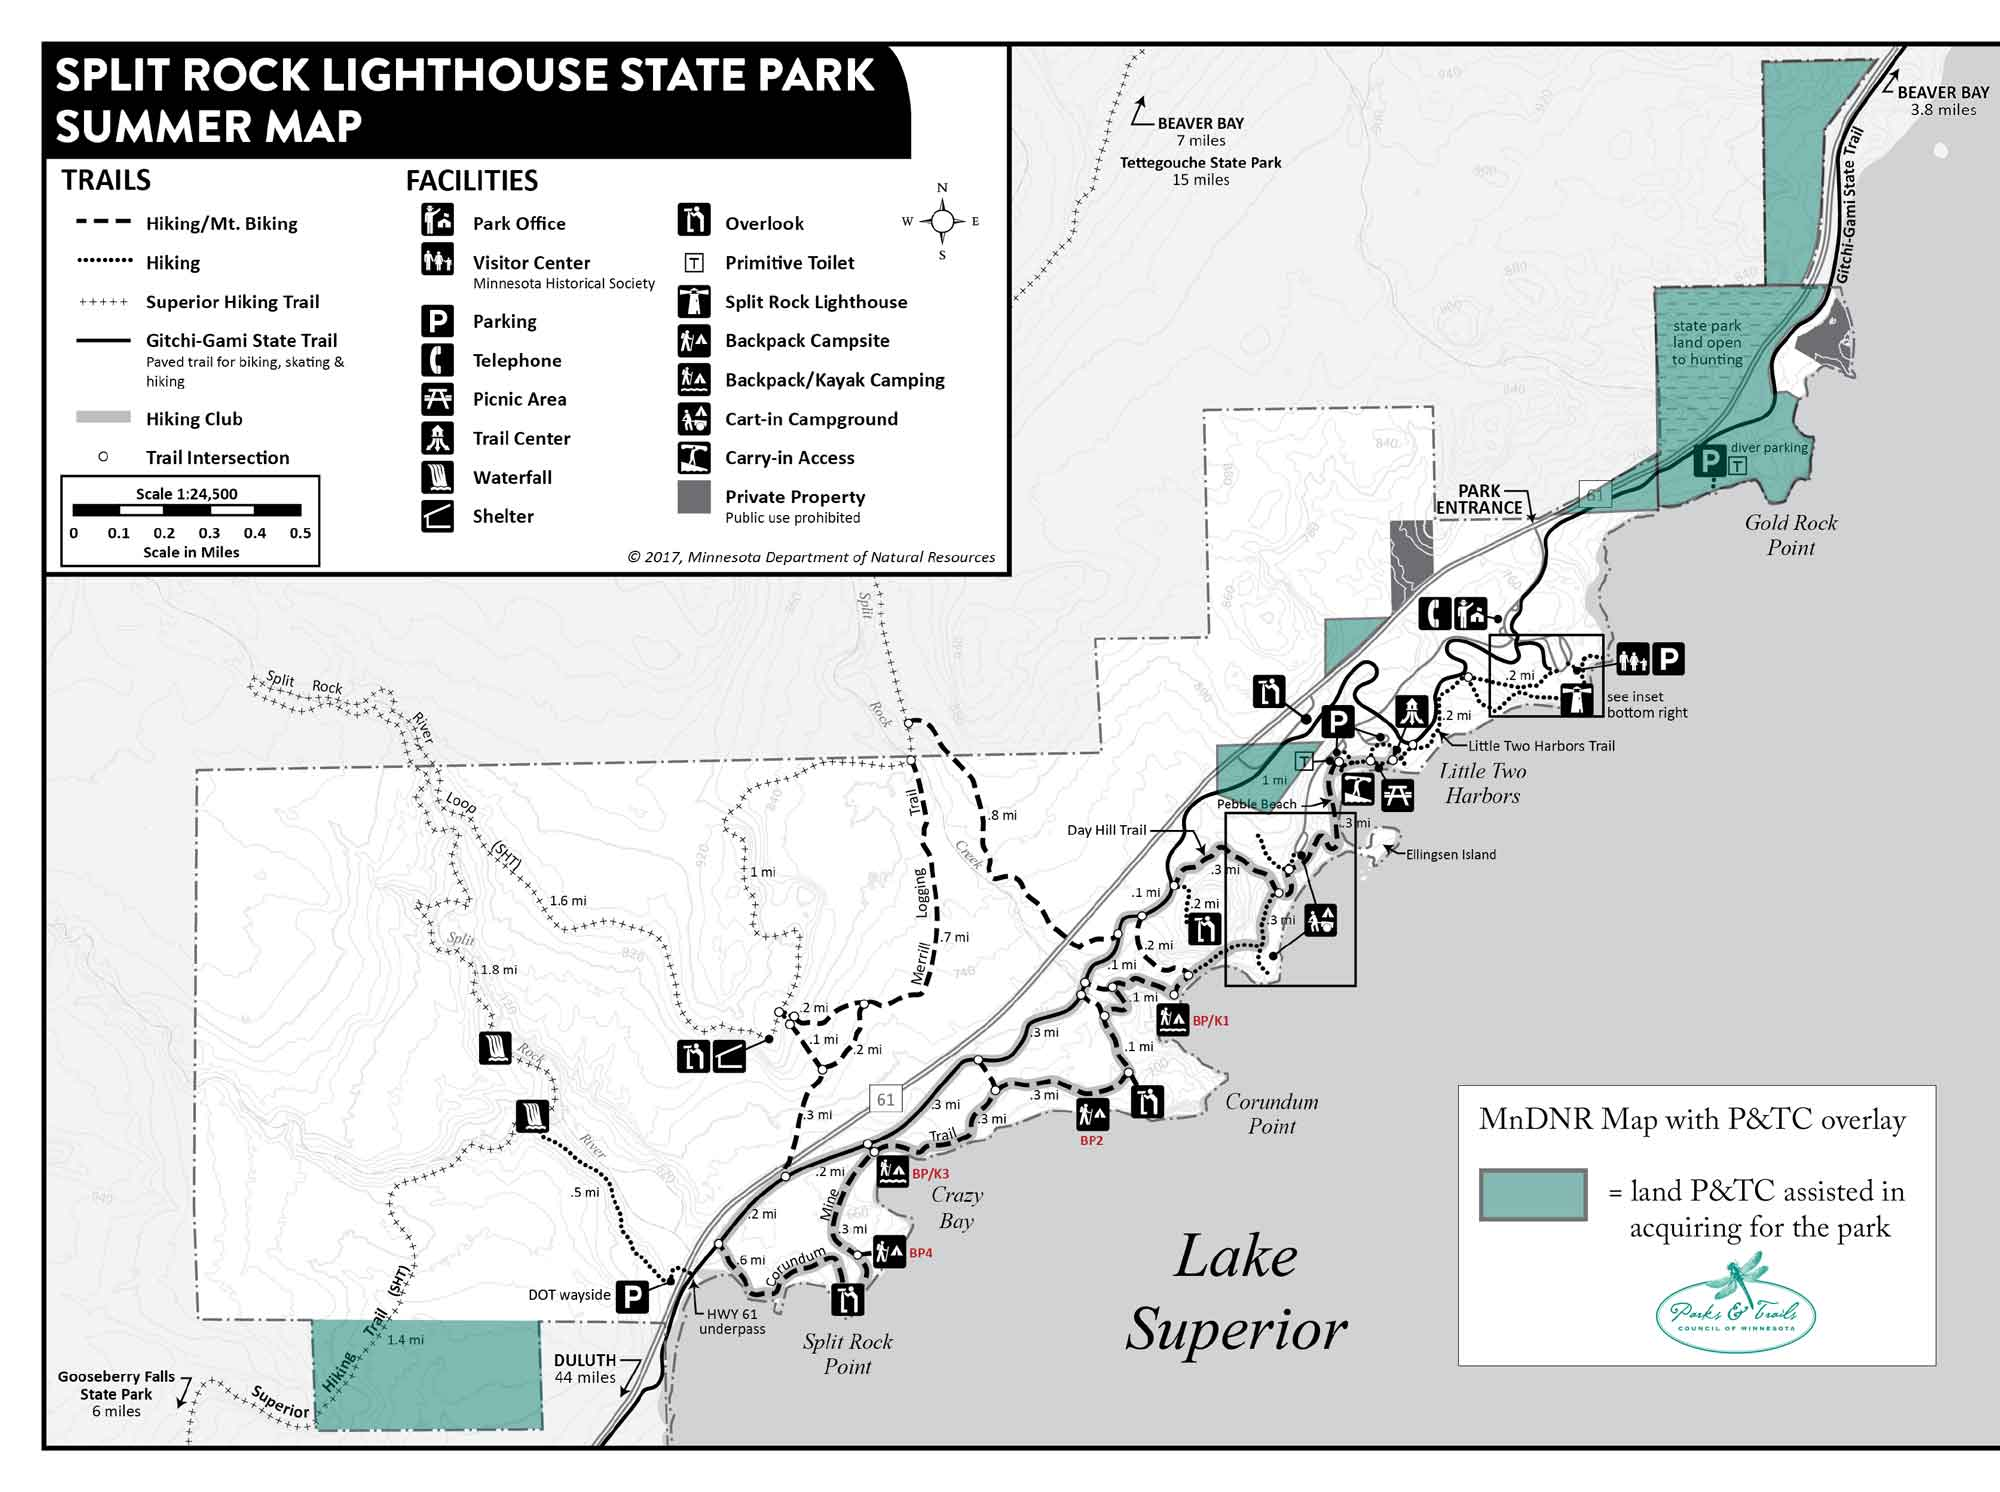 Map of Split Rock Lighthouse State Park showing project sites